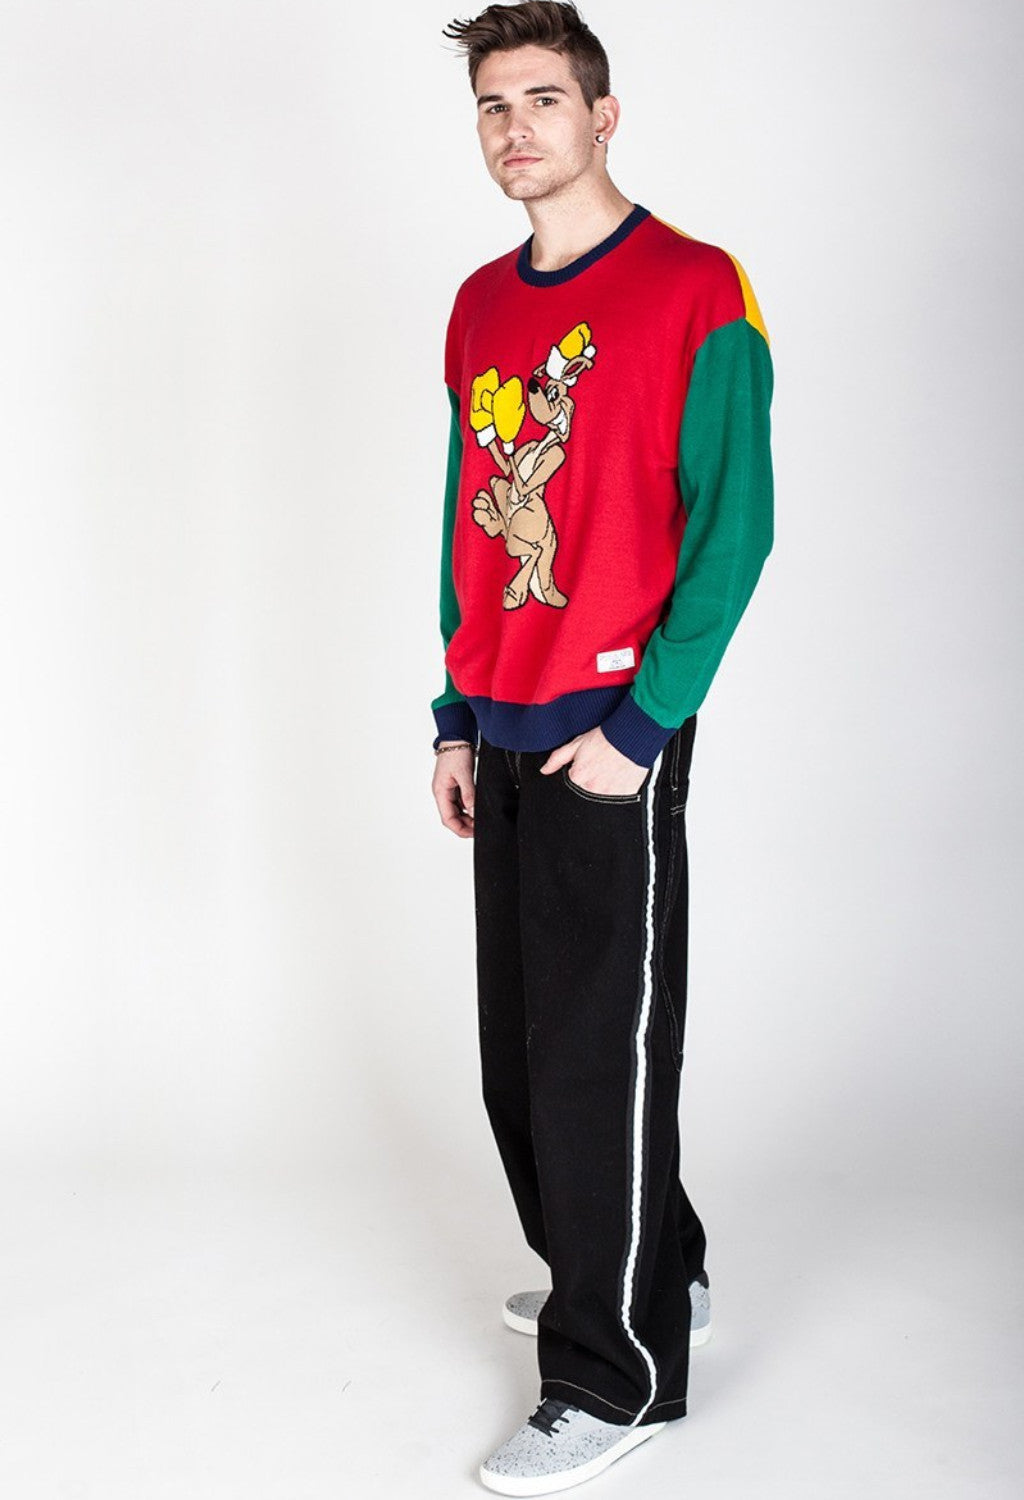 jnco uppercut novelty holiday sweater jnco jeans